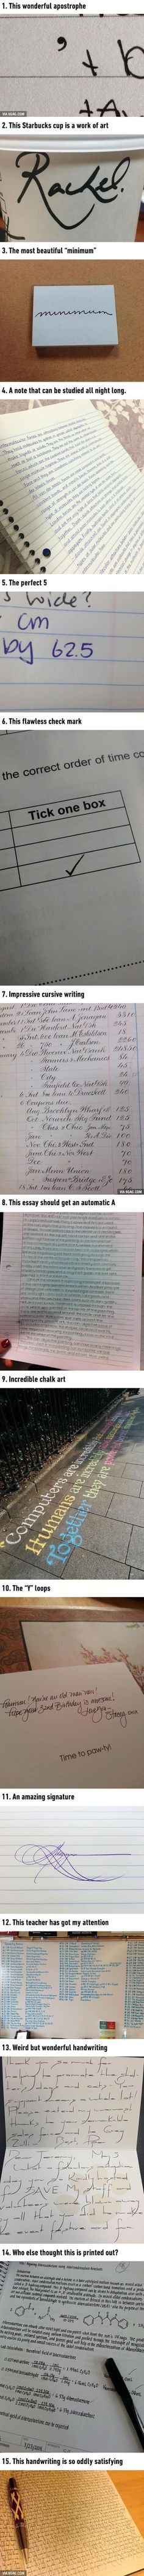 Pieces Of Handwriting That Are So Satisfying. I really need to work on my handwriting. These are so amazing. Satisfying Pictures, Oddly Satisfying, Satisfying Things, Make Me Happy, Make Me Smile, Image Swag, John Johnson, Geeks, Mind Blown